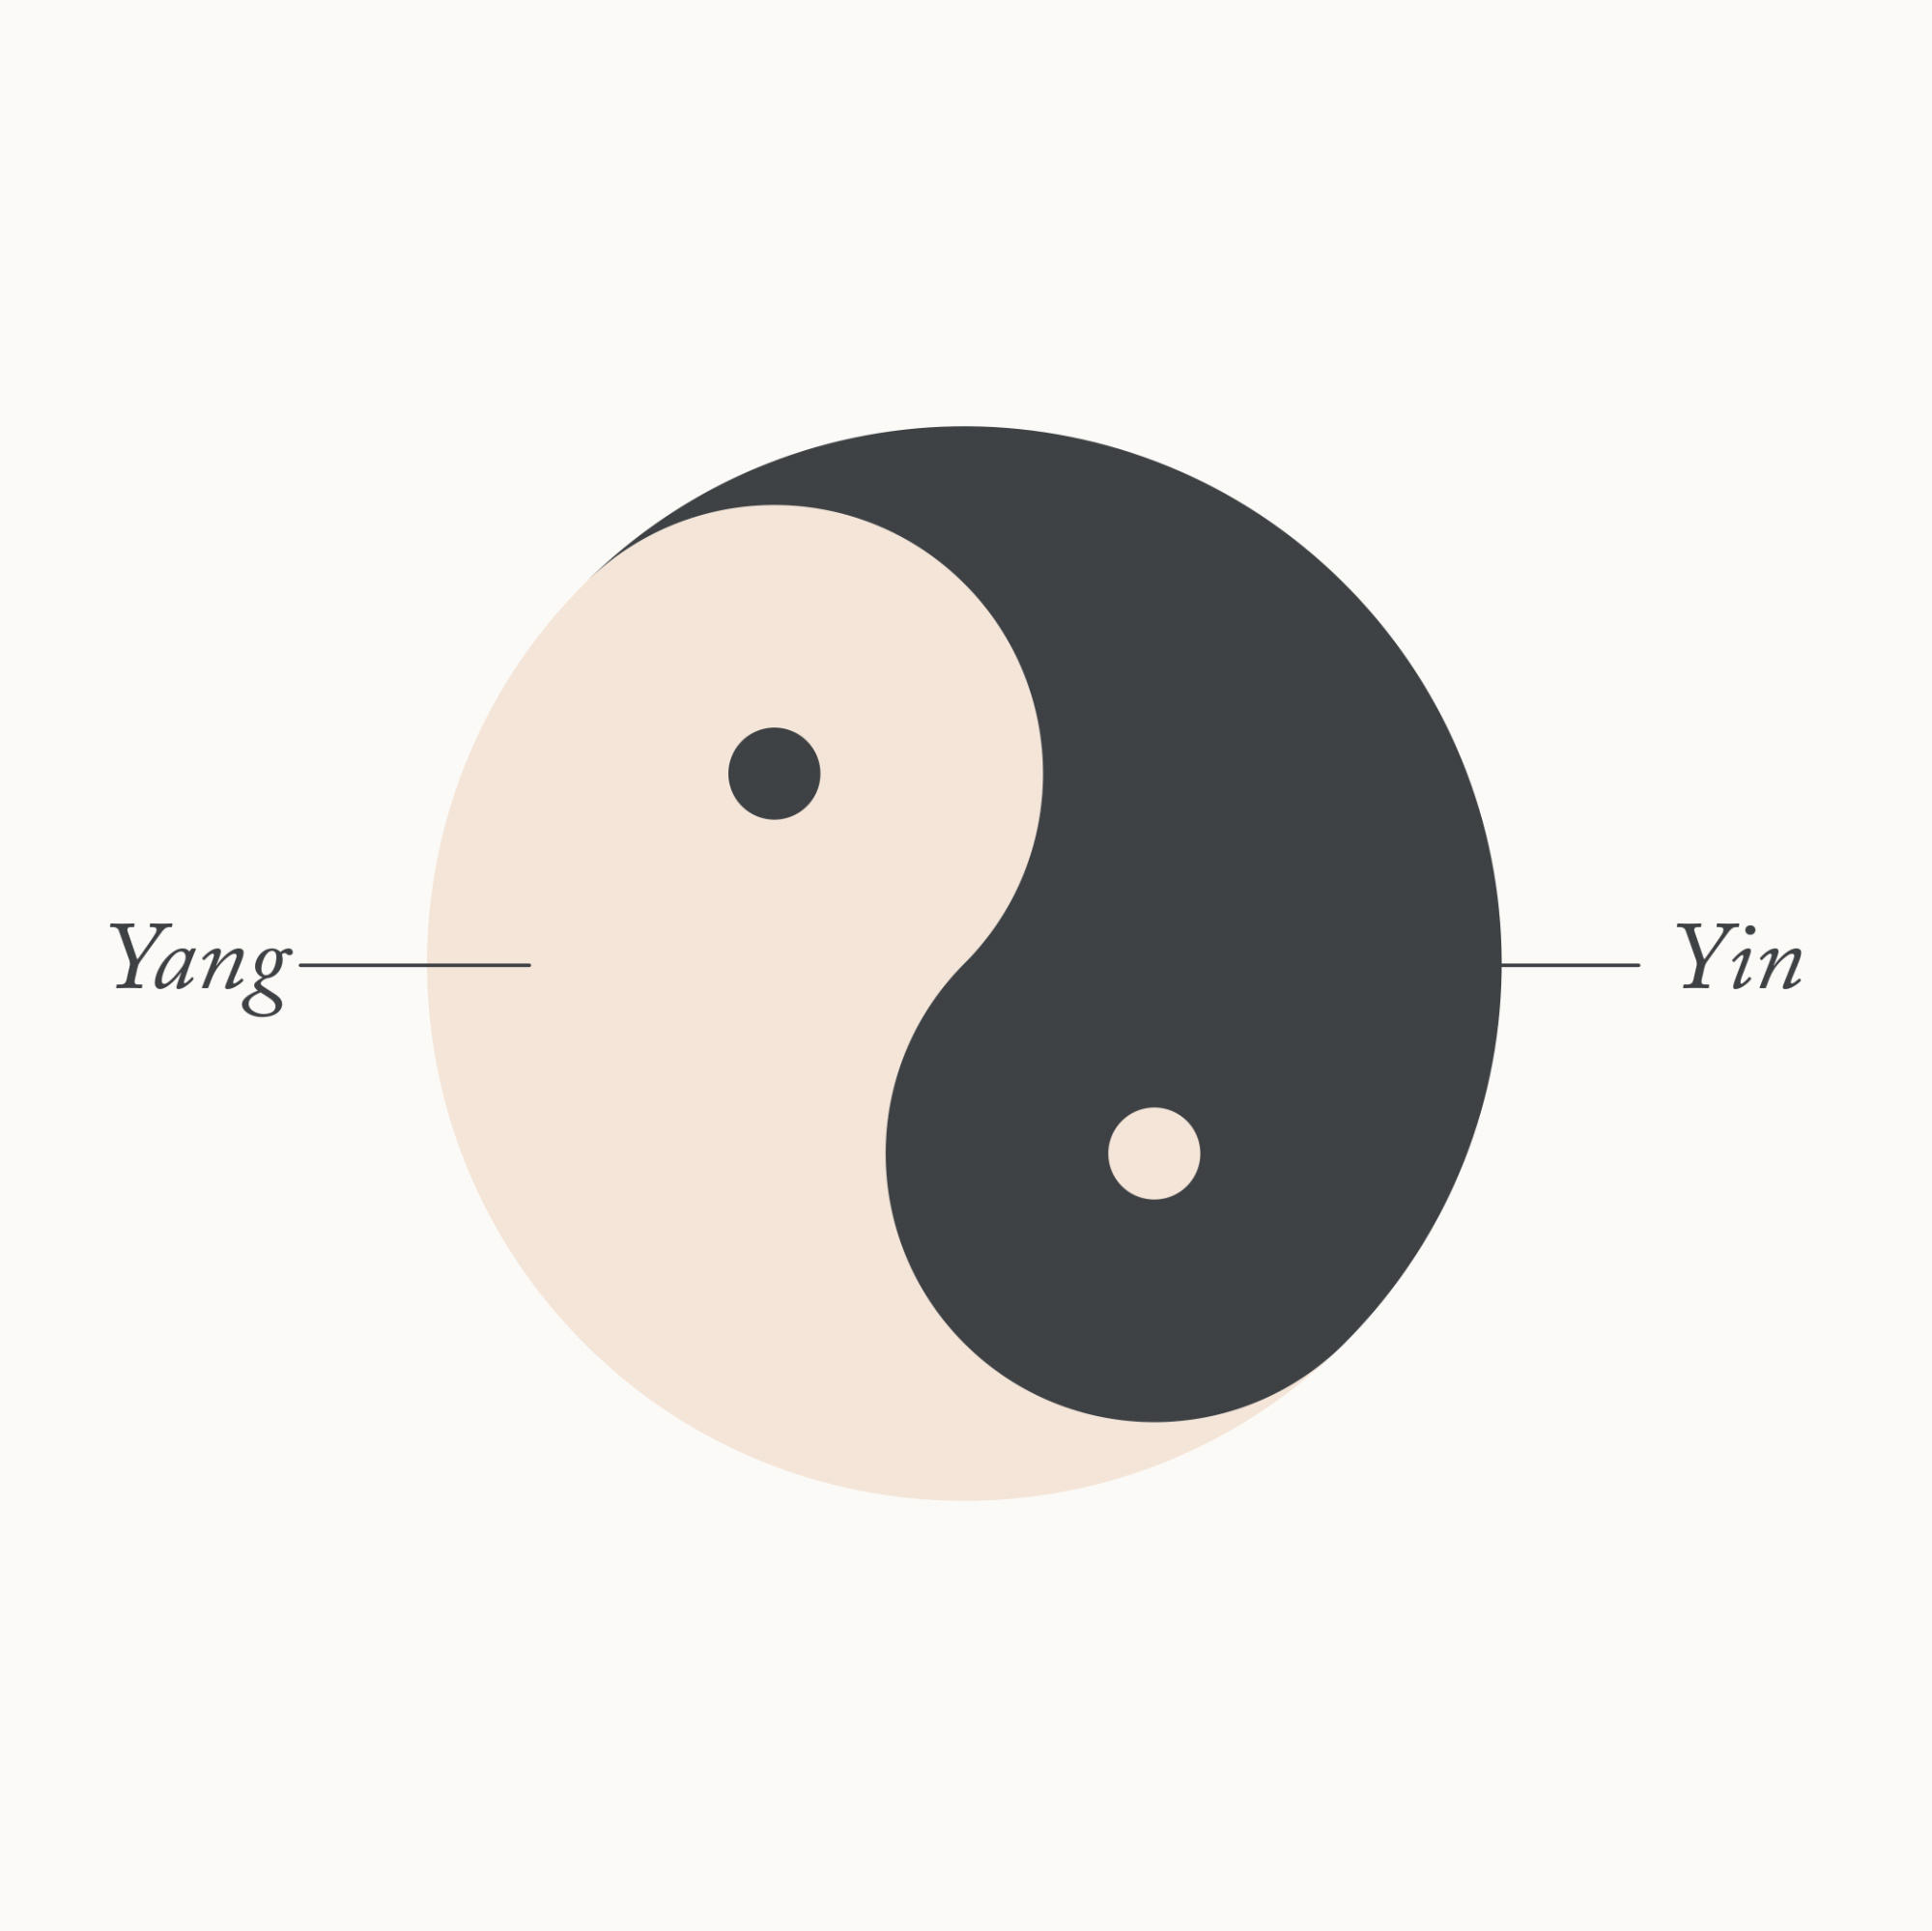 Eastwise-Yin-Yang-Graphic.jpg